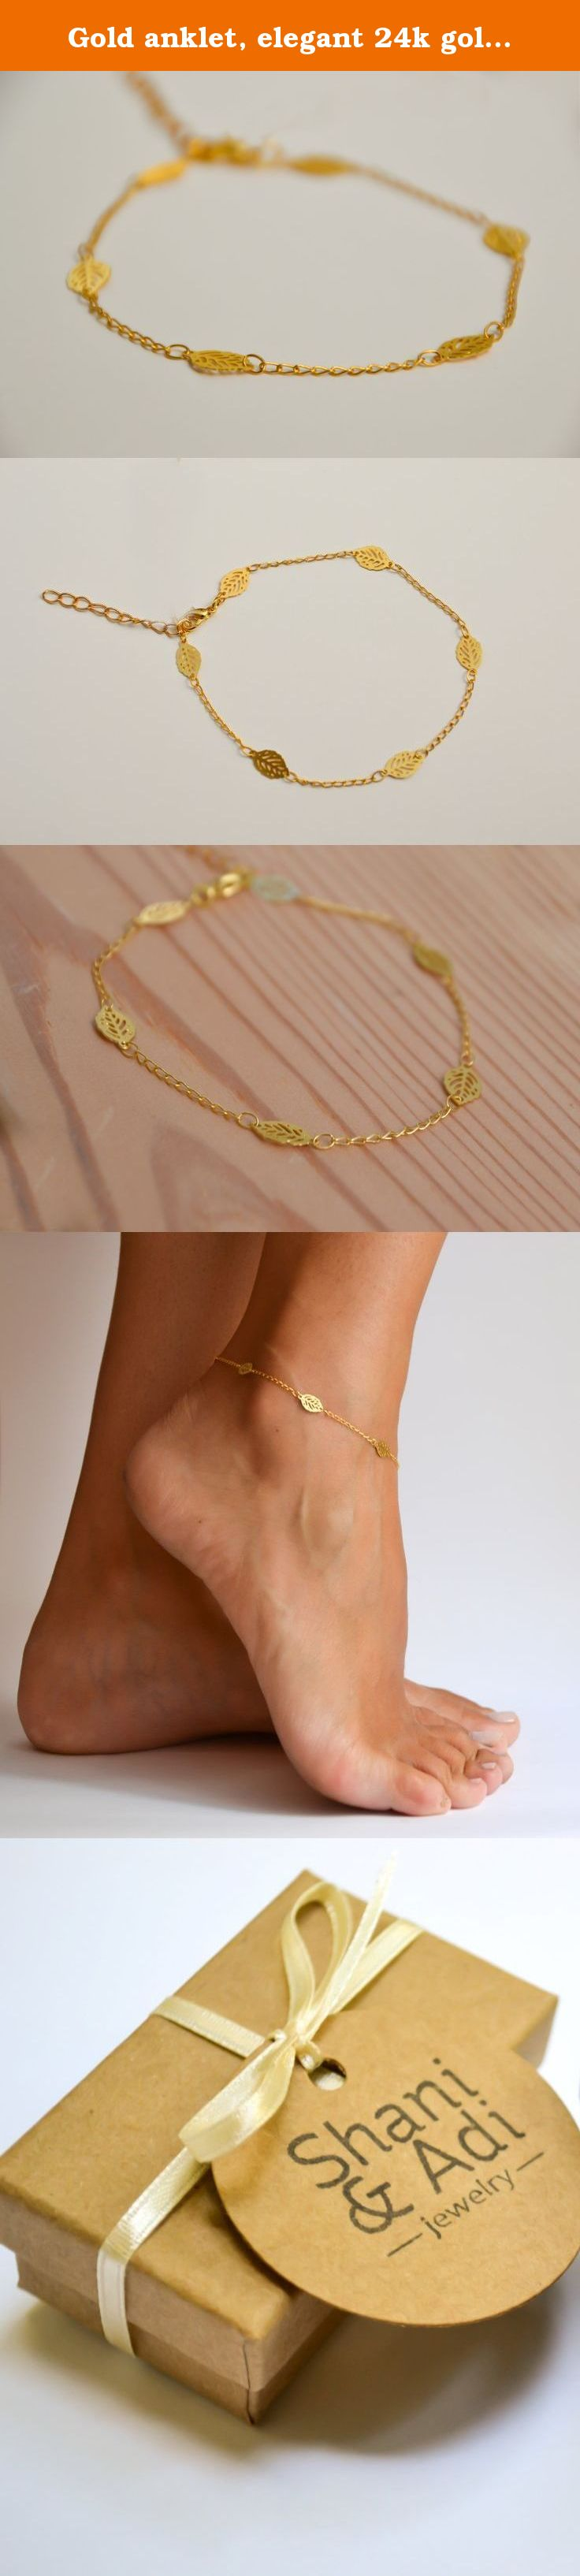 bracelet vermeil women c bracelets friendship copper gold rose ankle charms taupe with anklet cord